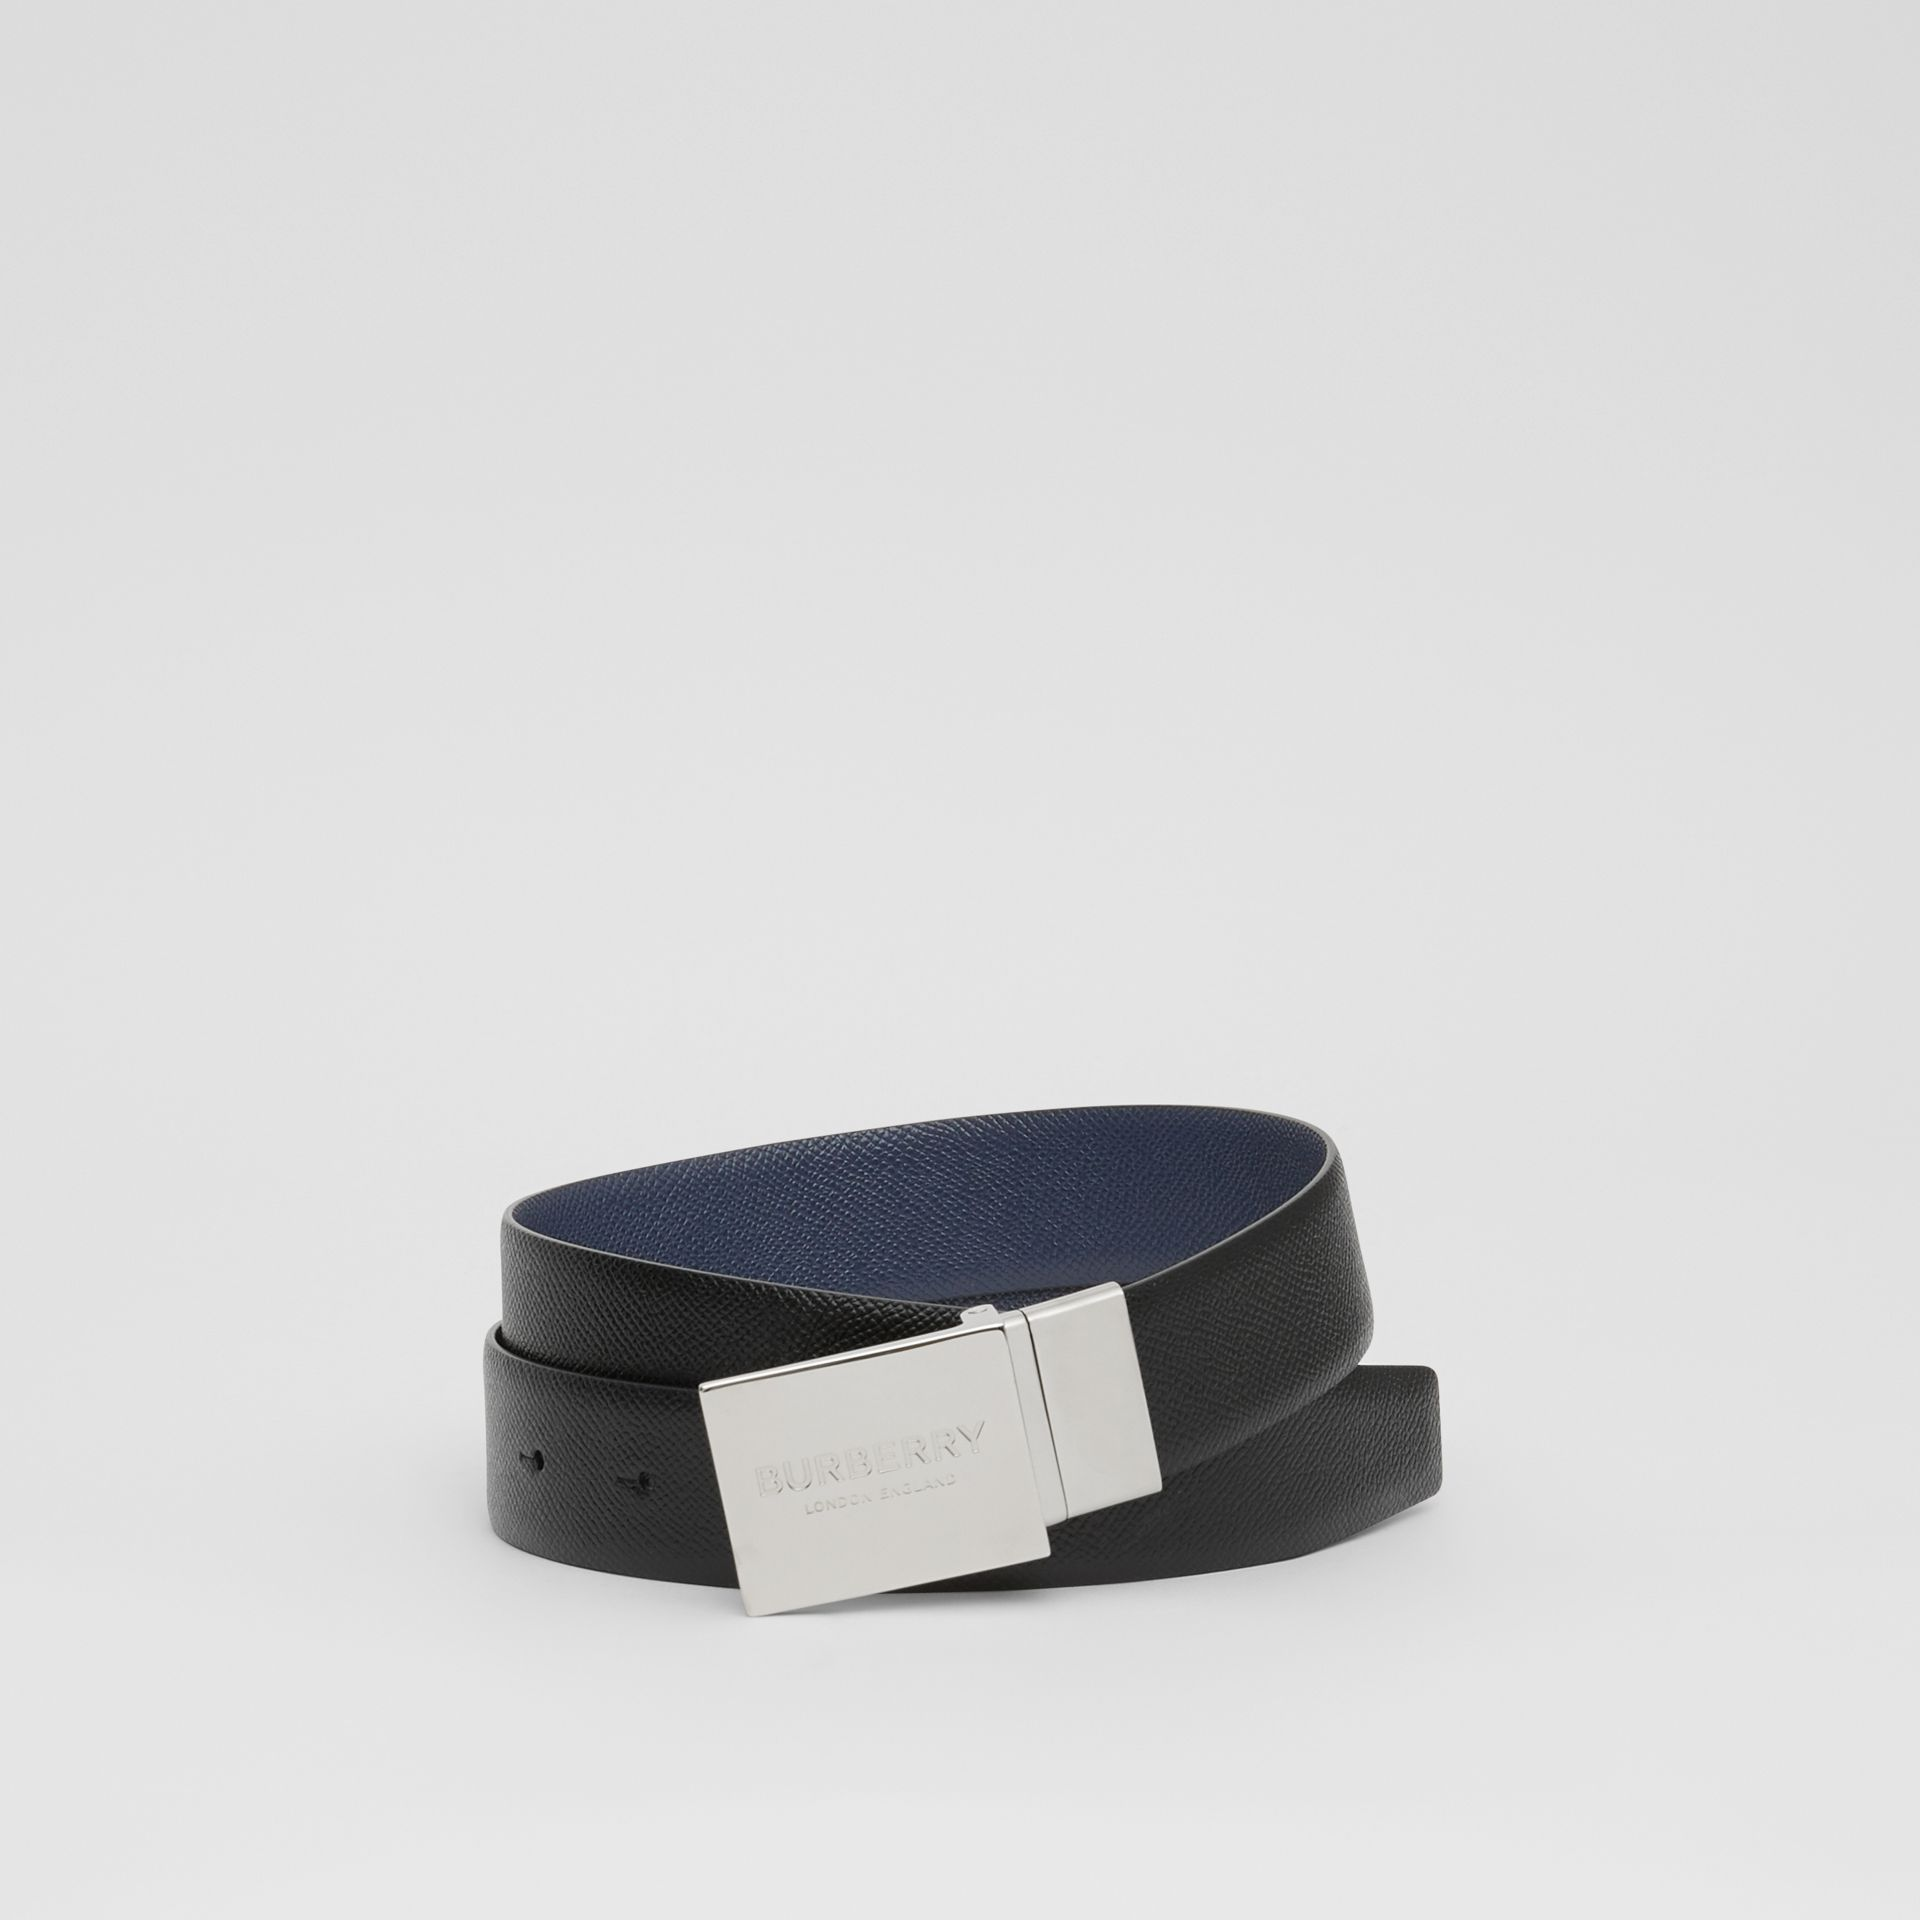 Reversible Plaque Buckle Grainy Leather Belt in Black/navy - Men | Burberry - gallery image 0